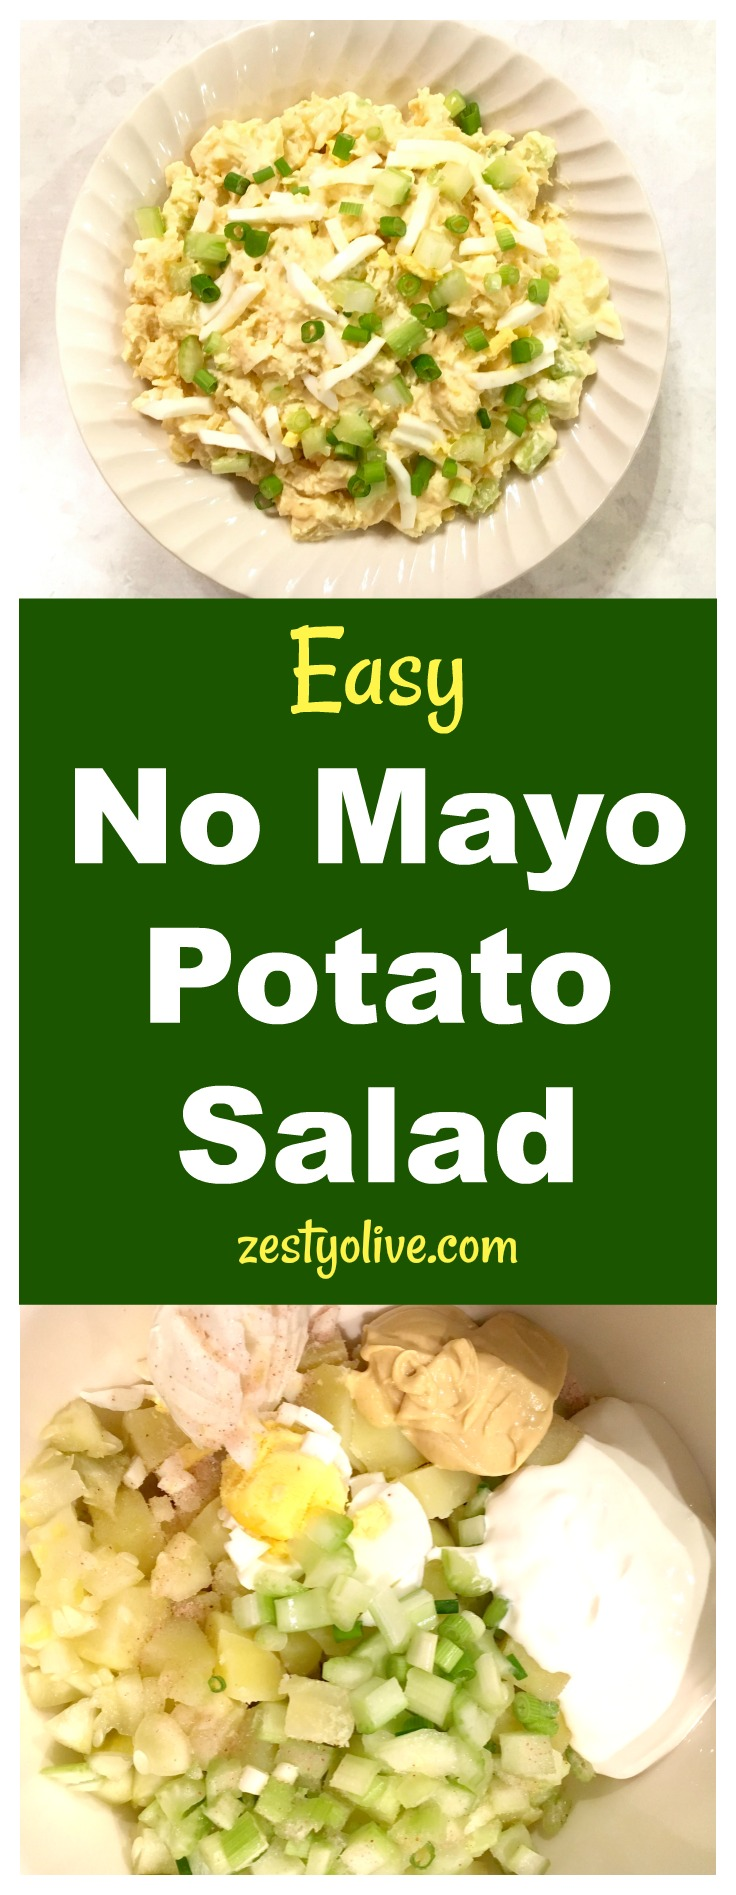 ThisEasy No Mayo Potato Salad Recipe is will become a favorite at your next picnic, BBQ or potluck. This potato salad is elevated by the spicy addition of Dijon mustard. Sour cream replaces the mayonnaise and the addition of egg, celery, green onions and dill pickle make this a zesty potato salad worthy of your next gathering.